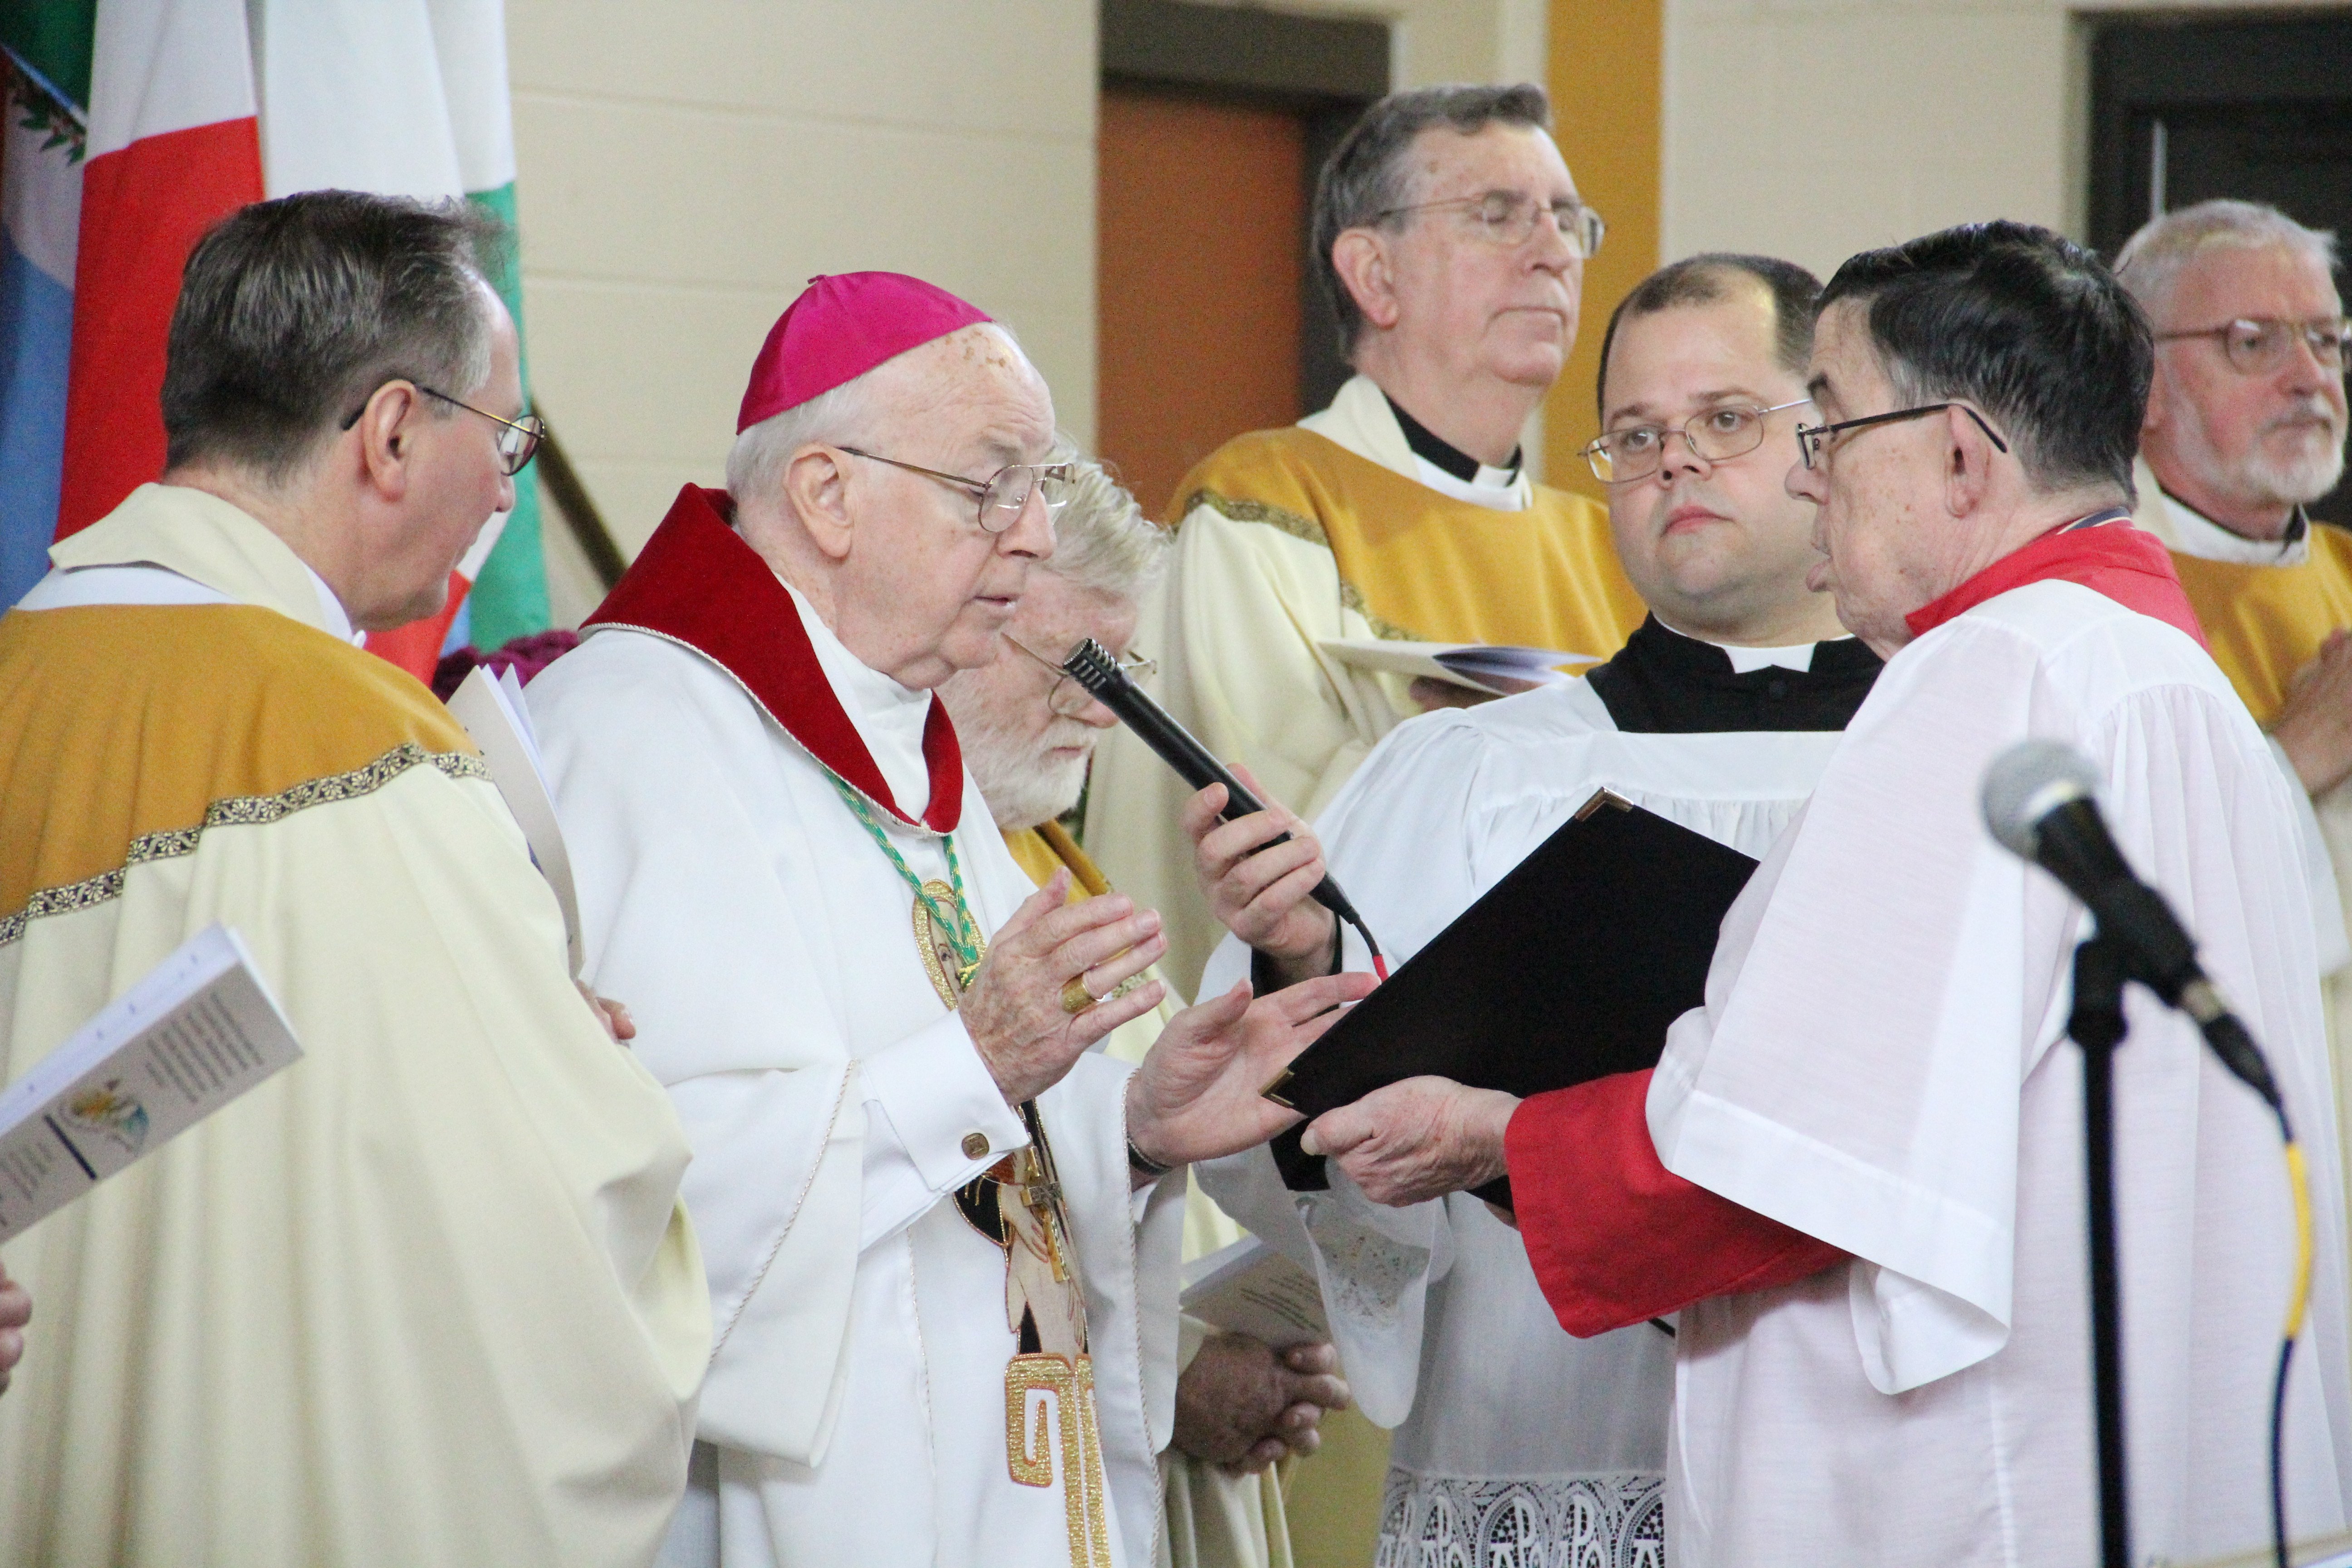 Retired Auxiliary Bishop Robert P. Maginnis celebrated Mass Oct. 24 at Don Guanella Village in Springfield, Delaware County, to commemorate the canonization of Blessed Don Louis Guanella.